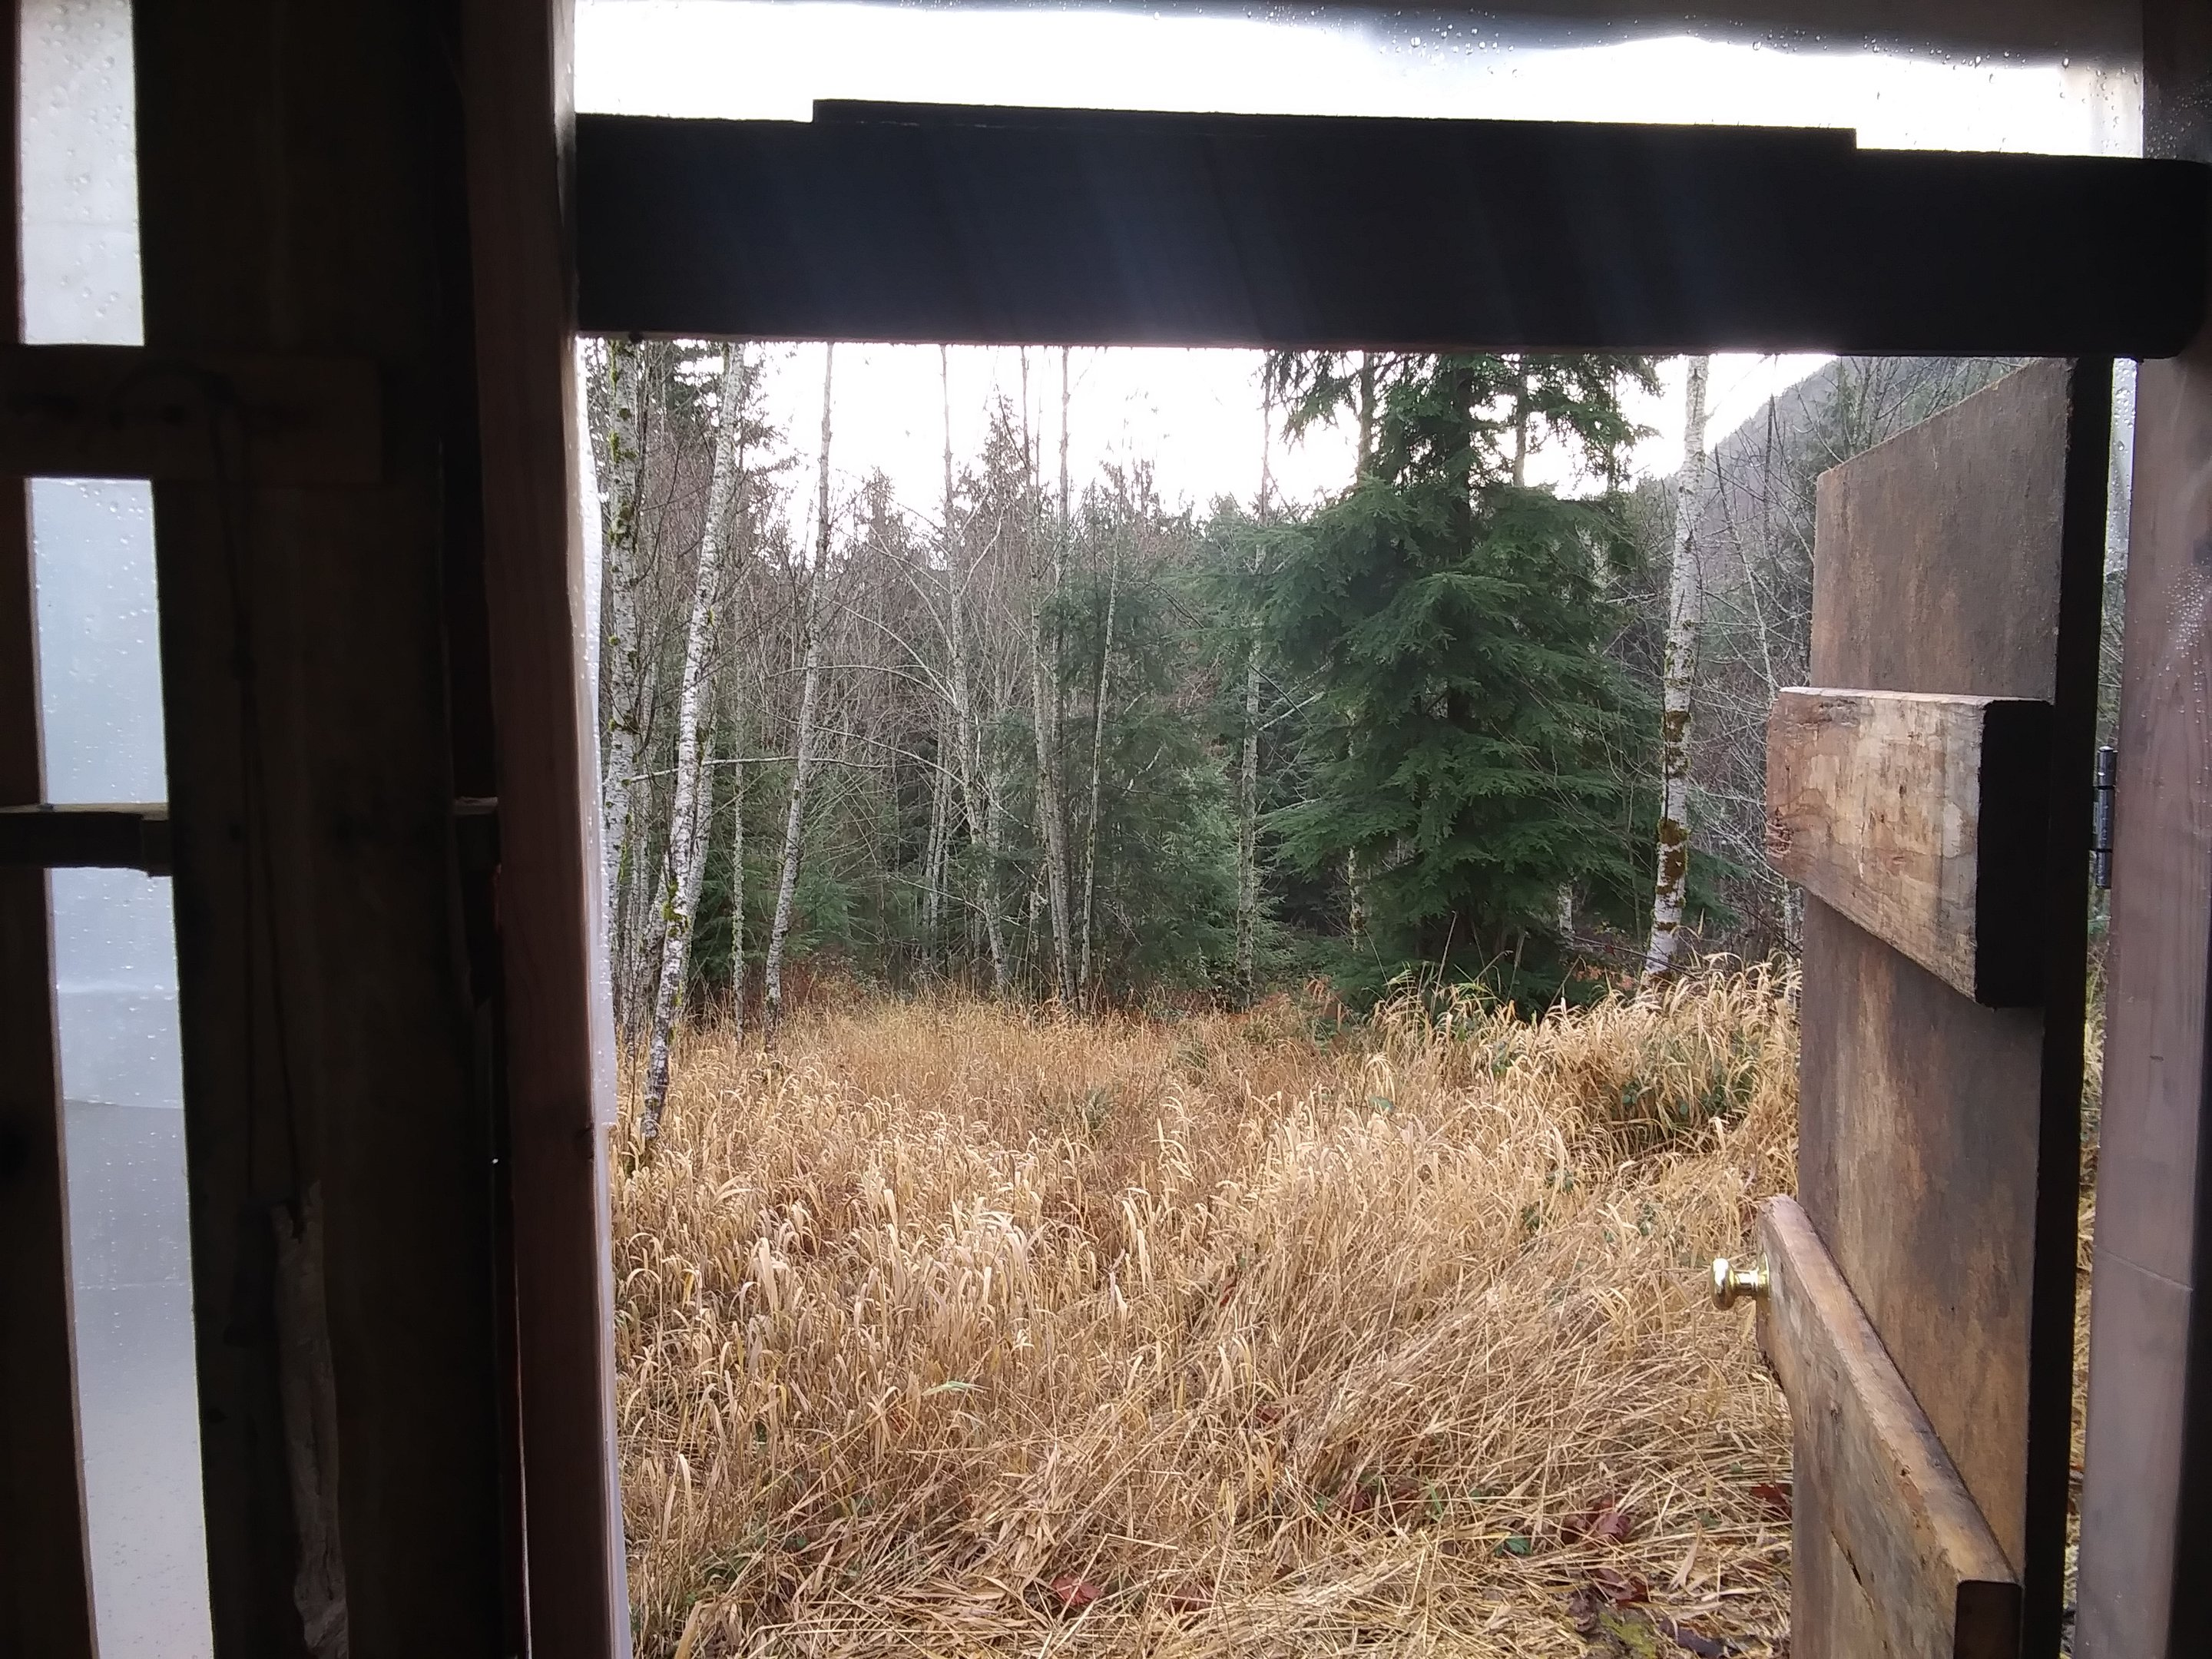 front-yard-view-from-door-jpg.52723_Off-Grid homesteadin' wing'n it yeh_Alternative Housing_Squat the Planet_12:24 PM